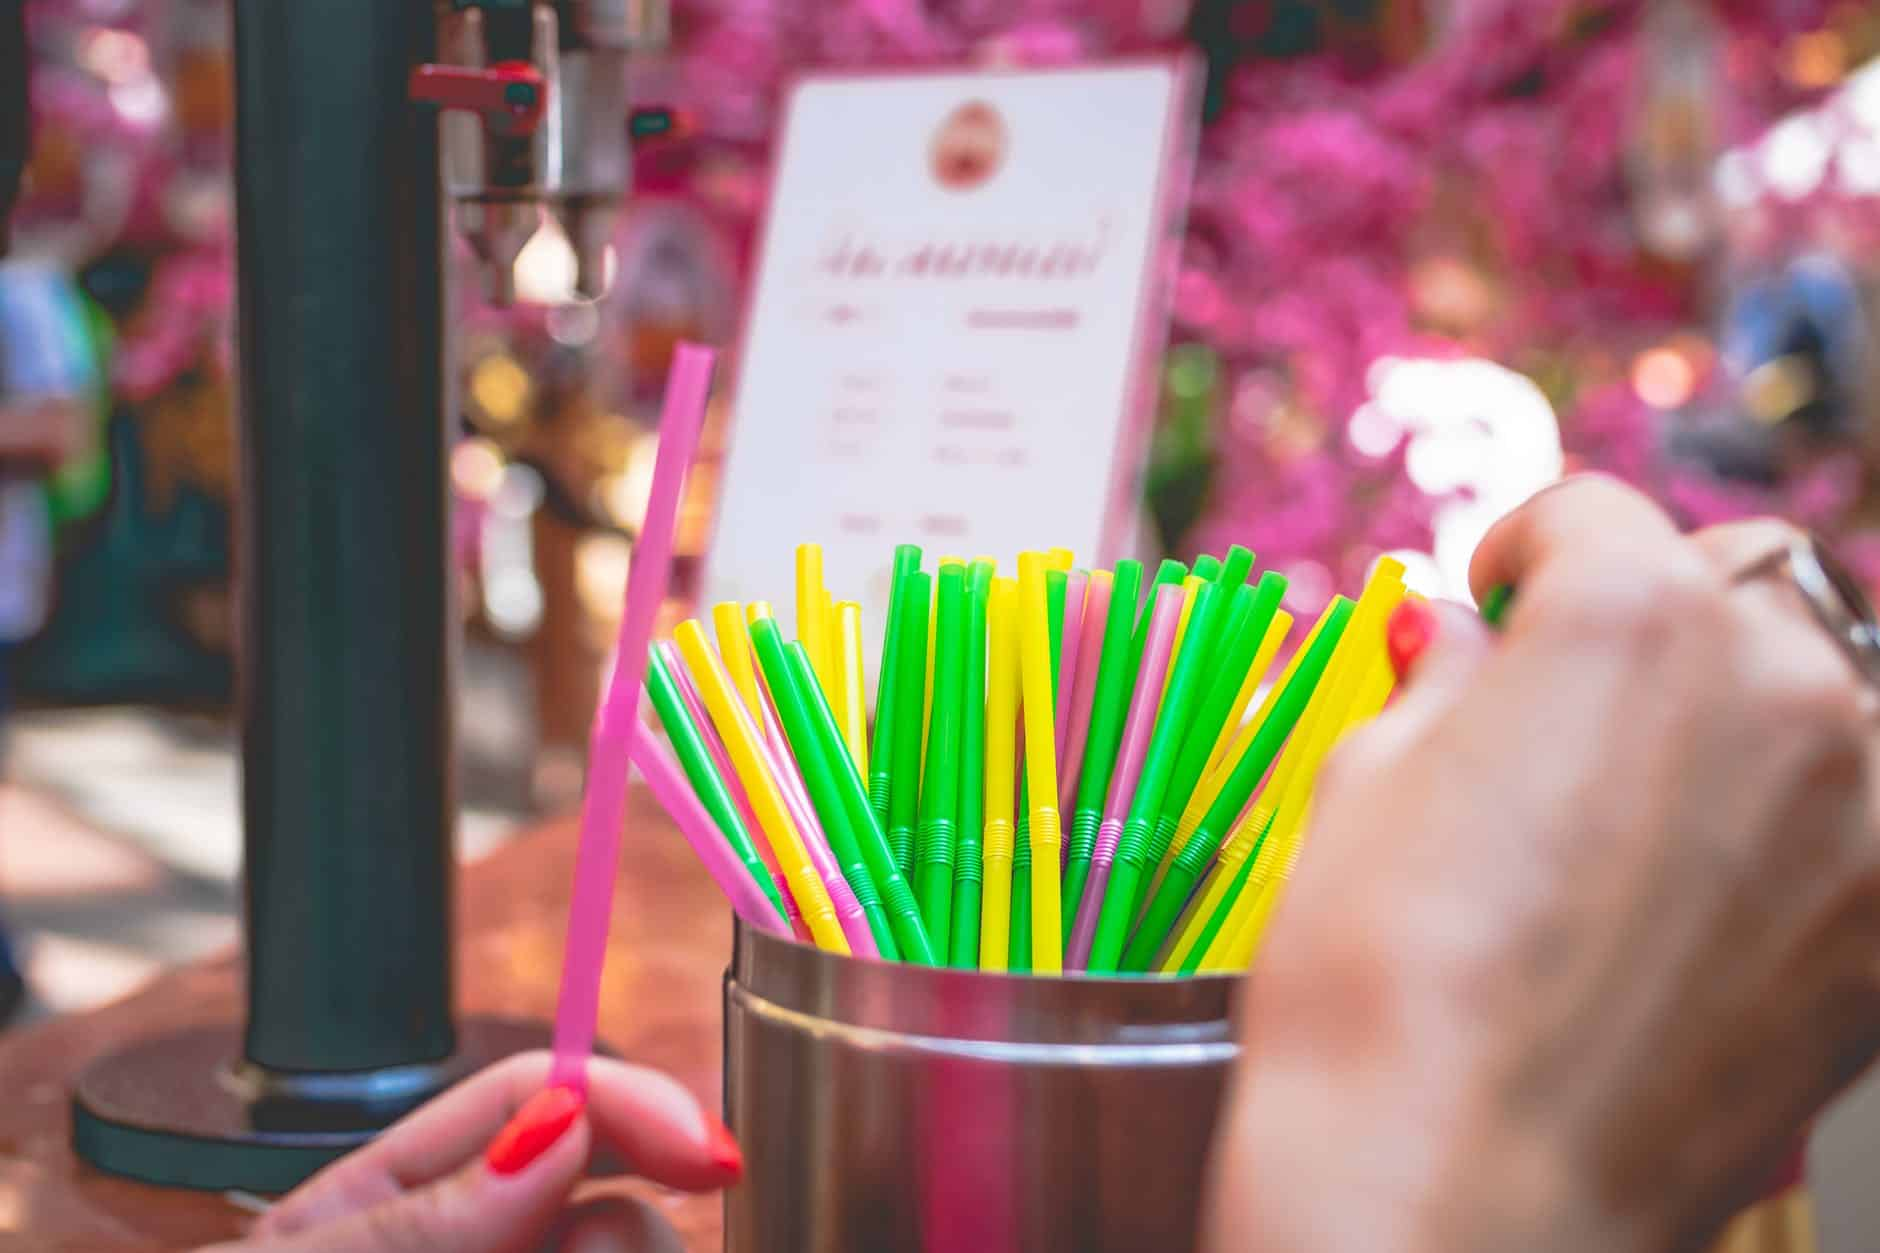 Will Shifting To Reusable Straws Really Make A Difference?